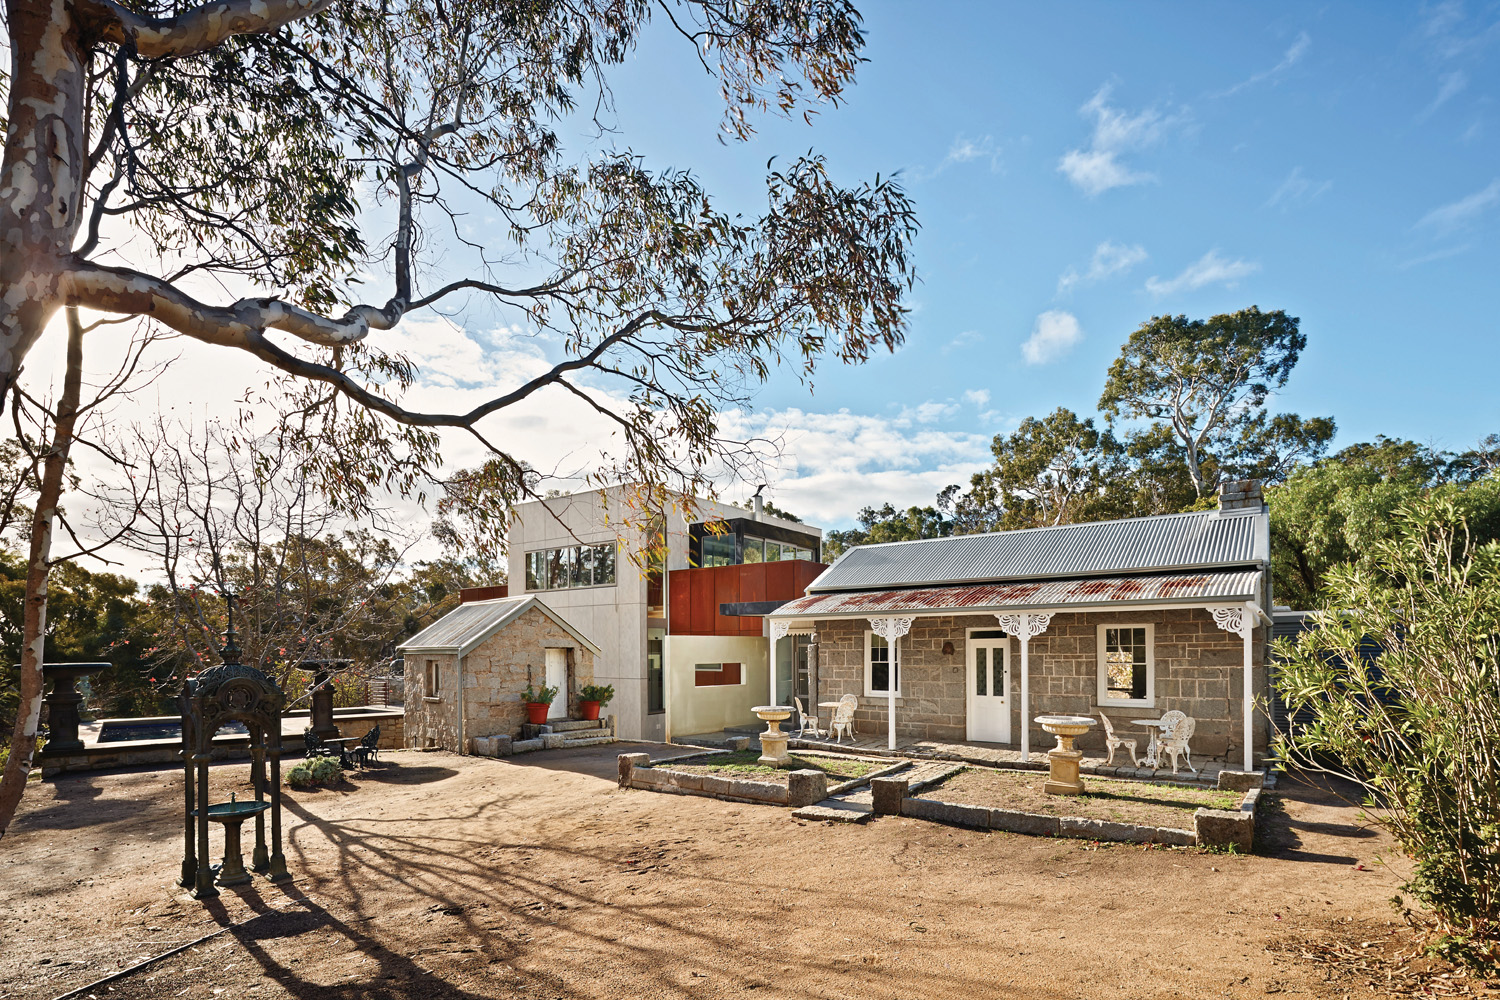 The original cottages are joined to the new renovation, preserving  a little bit of history